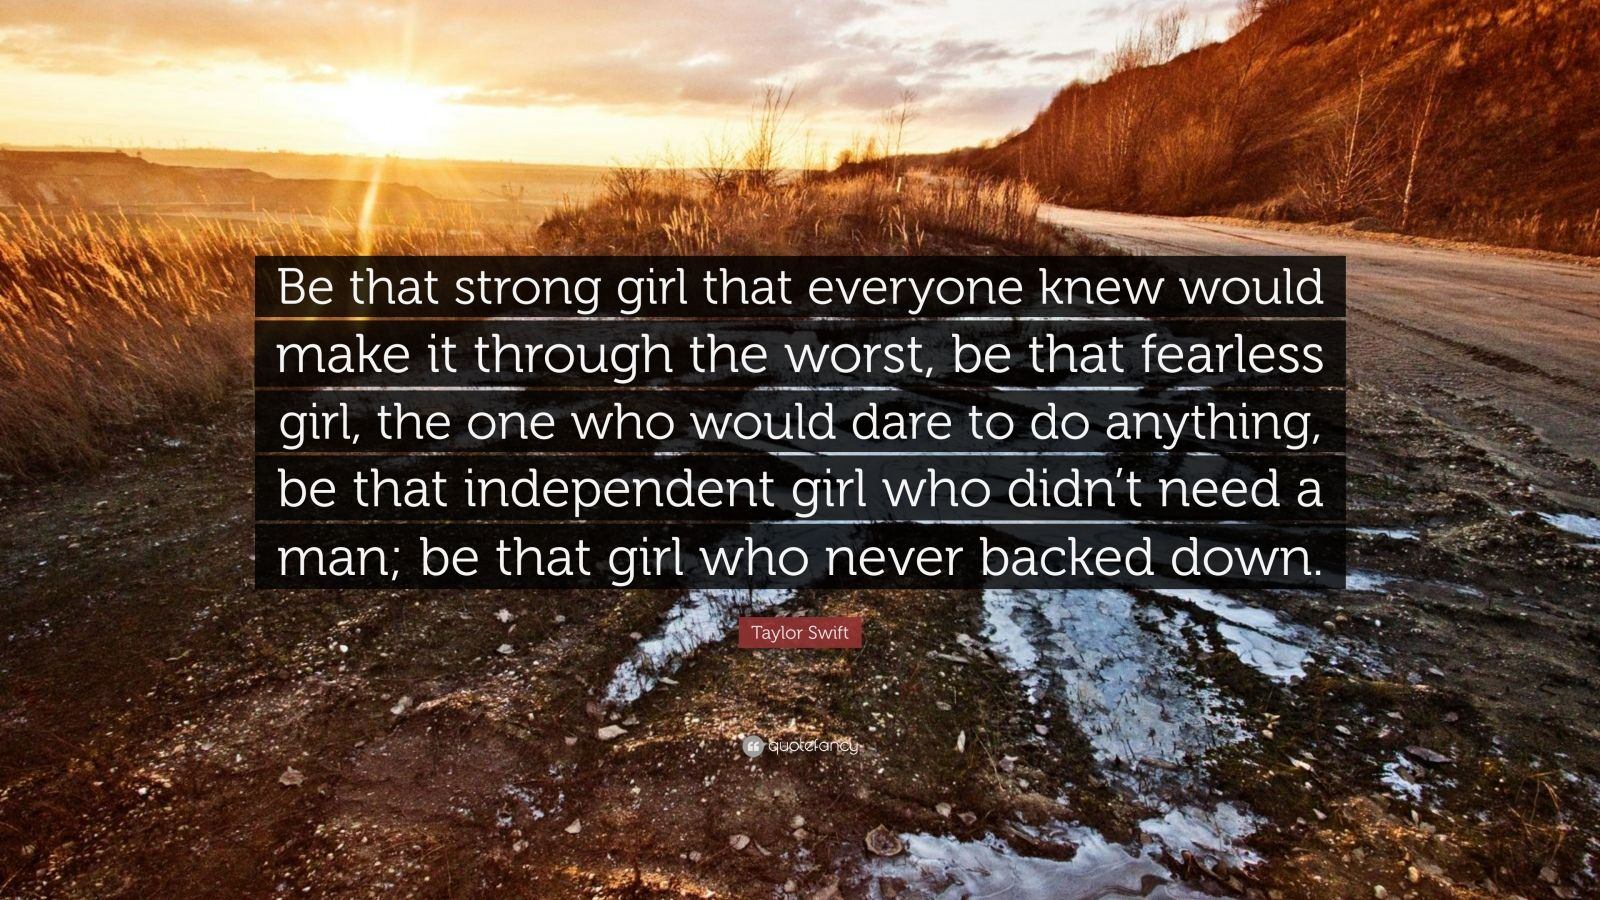 "Taylor Swift Quote: ""Be that strong girl that everyone knew would make it through the worst, be that fearless girl, the one who would dare to do anything, be that independent girl who didn't need a man; be that girl who never backed down."""